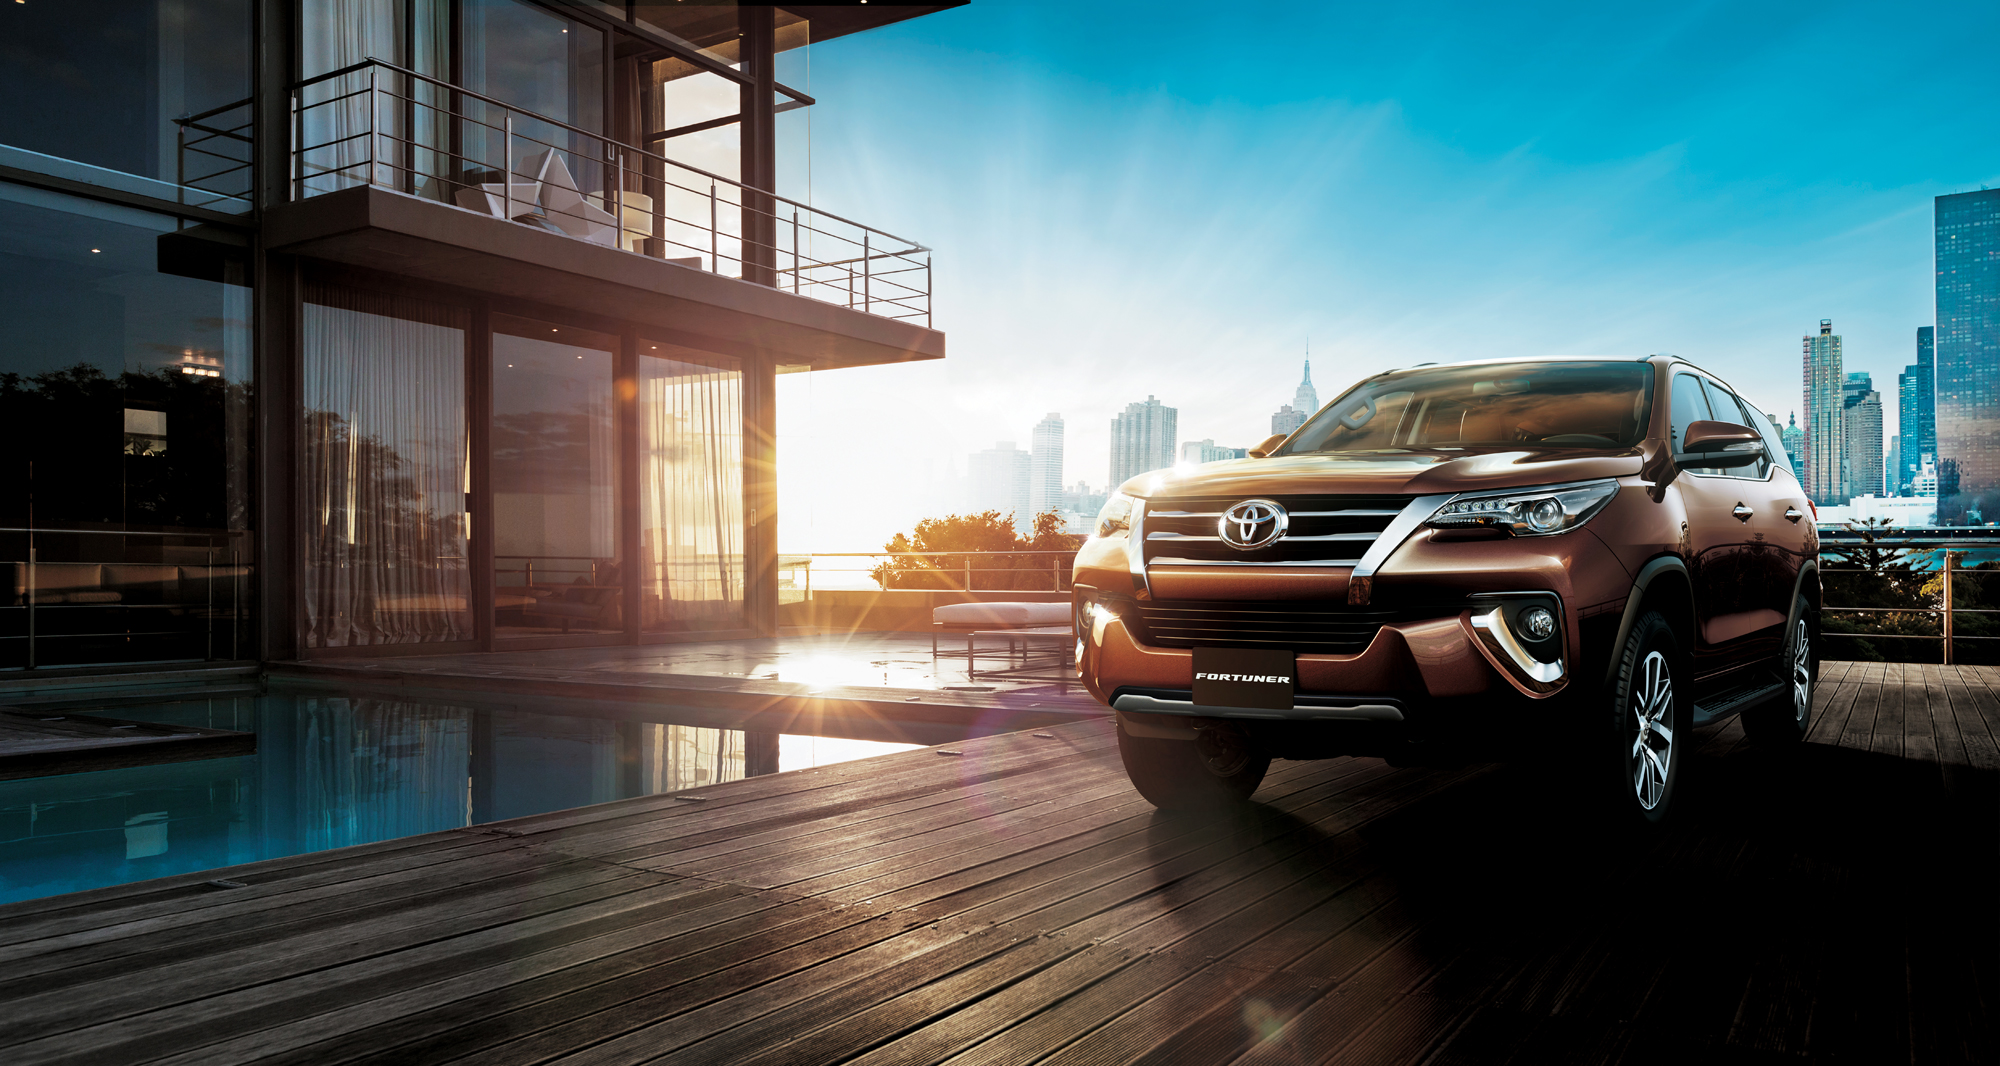 2016 Toyota Fortuner Launched In Dubaimotoring Middle East Car News Reviews And Buying Guides